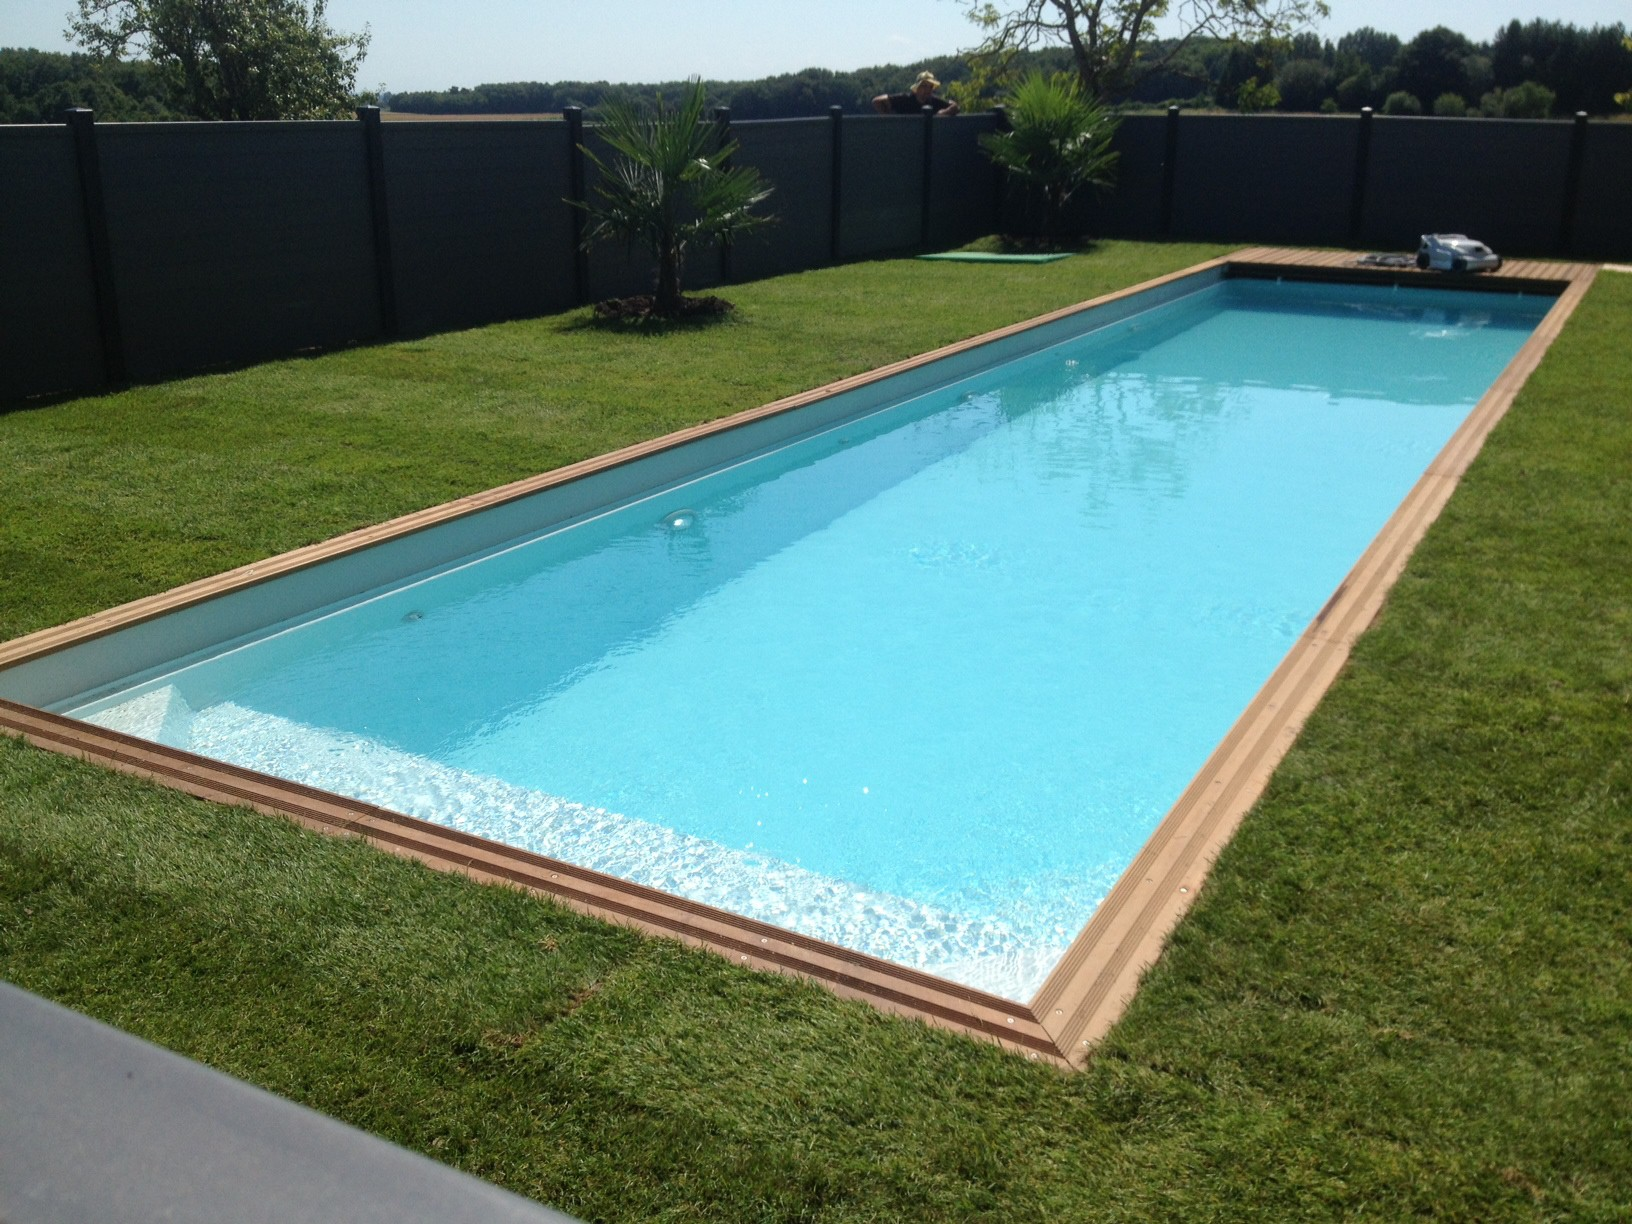 Prix piscine beton 8x4 prix coque piscine 8x4 photos que for Prix piscine enterree